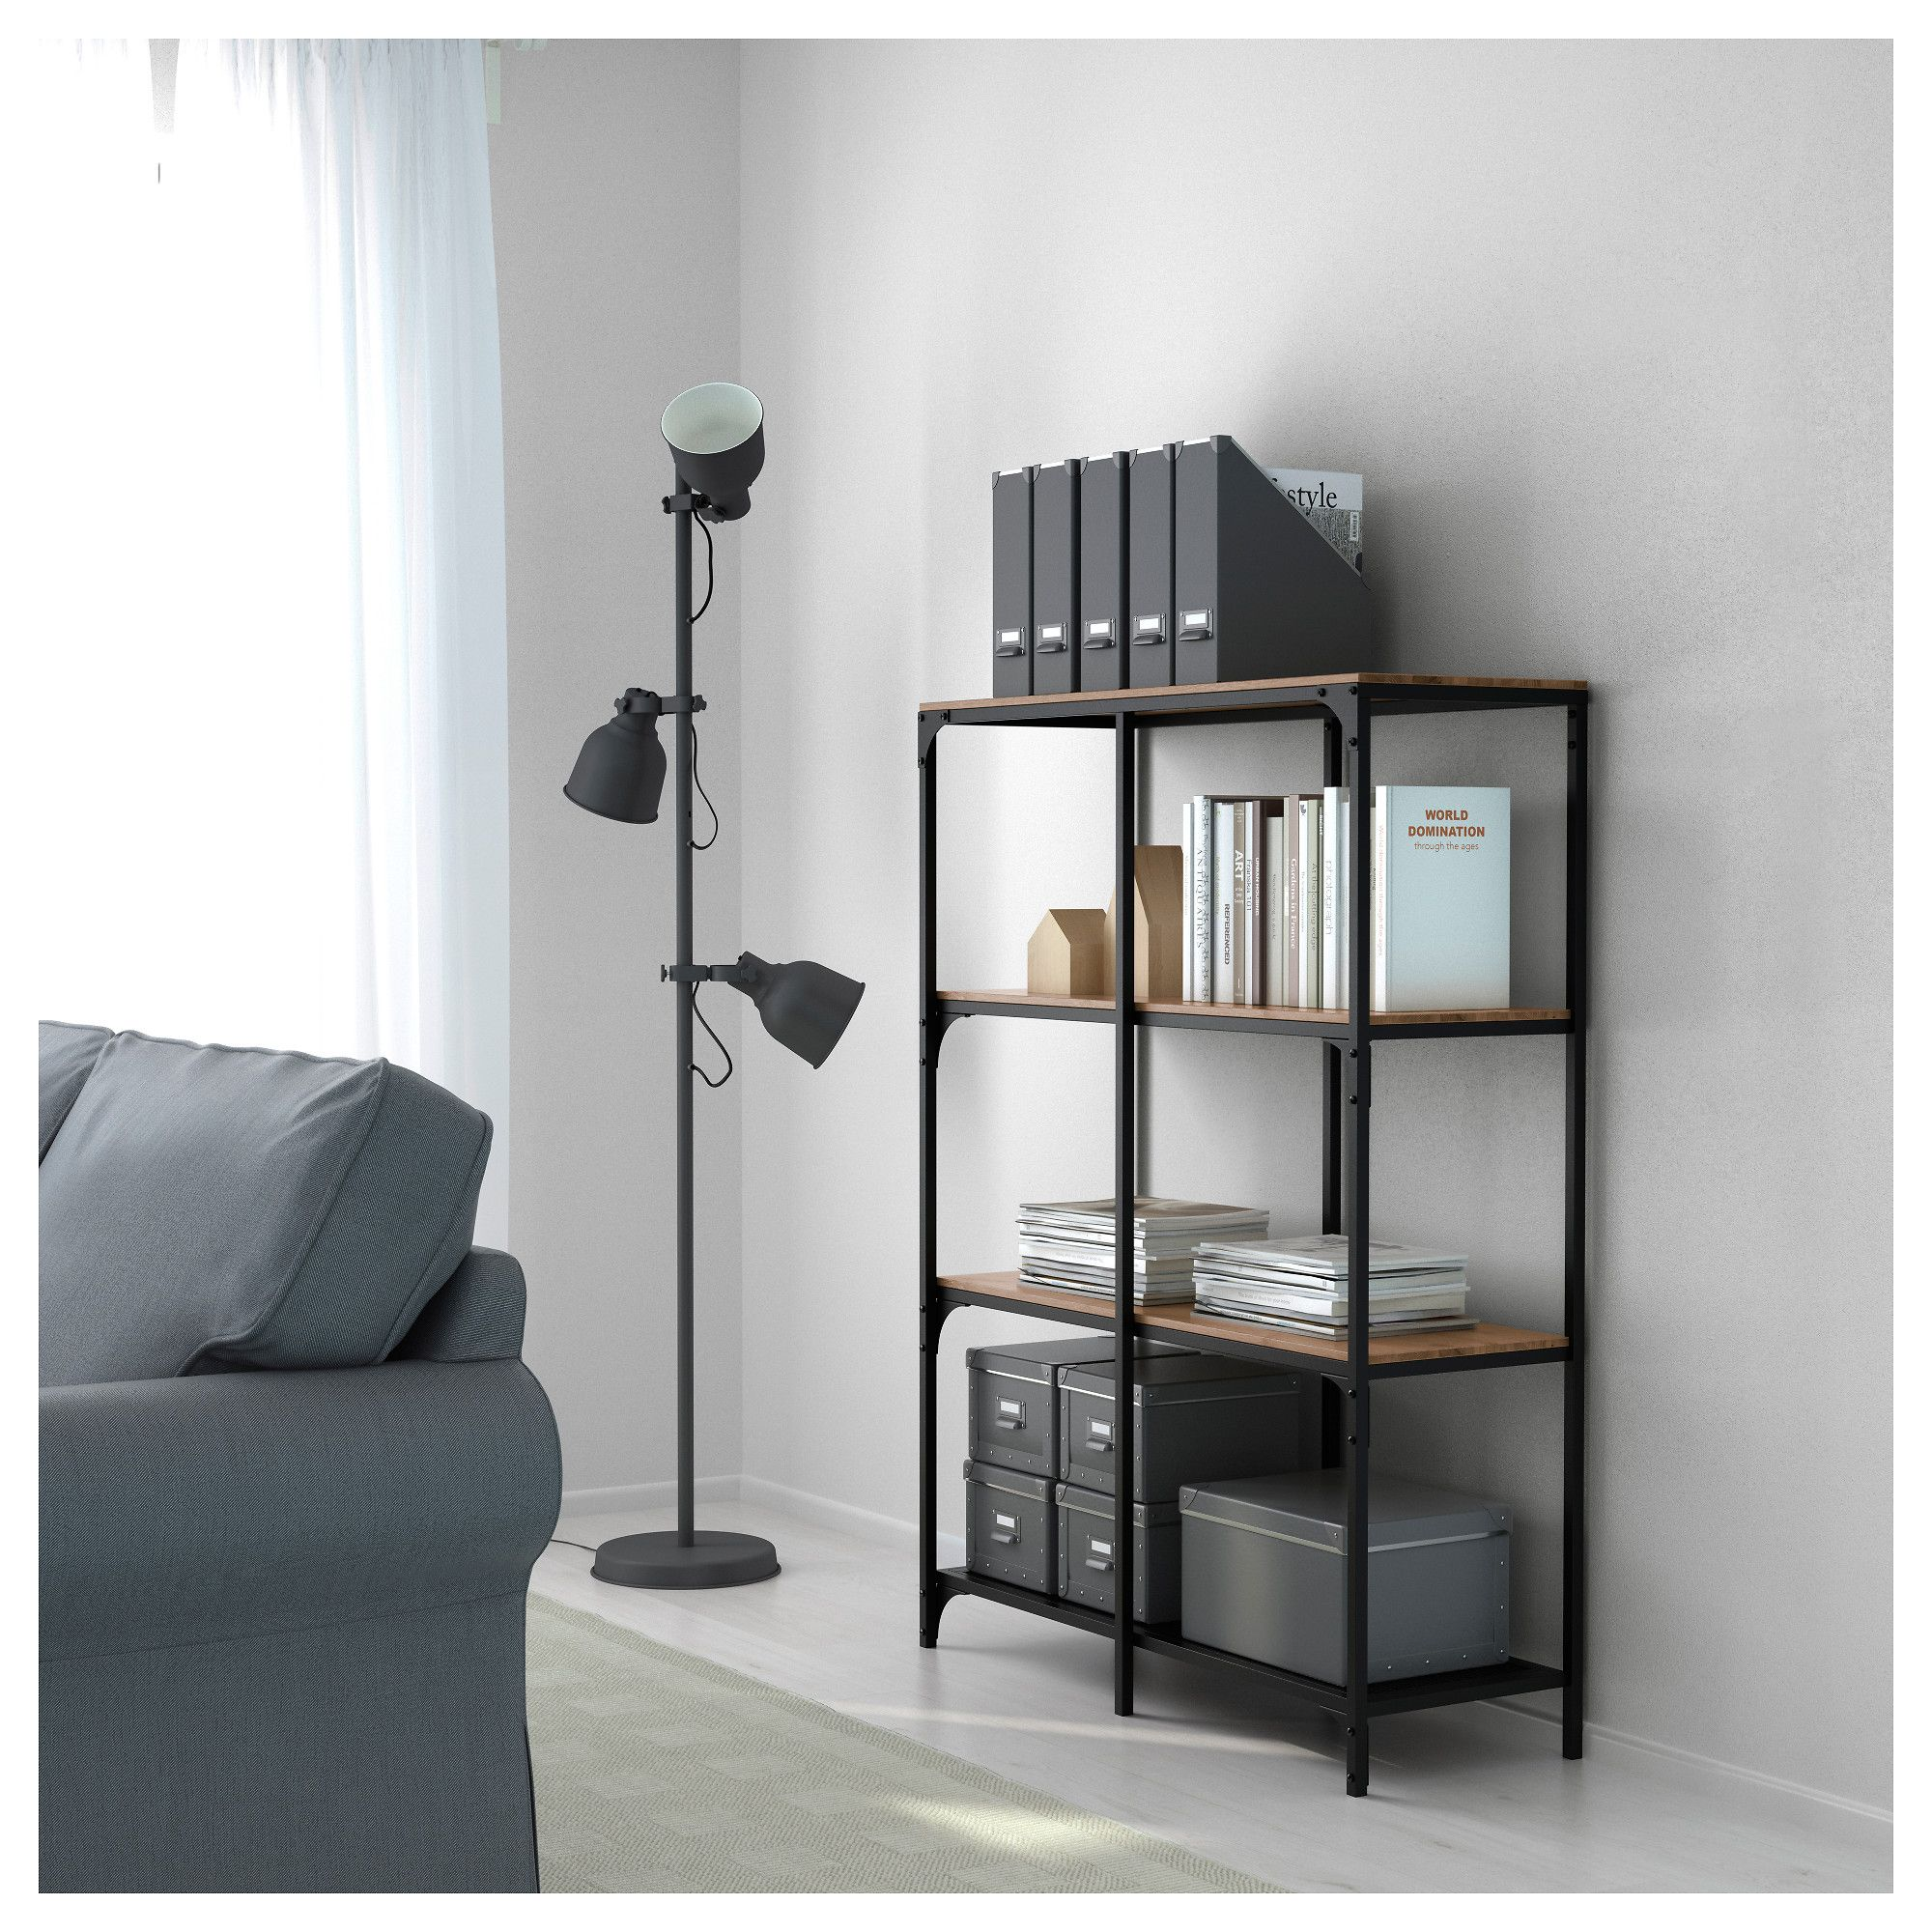 Fj Llbo Shelf Unit Black Ffe Ikea Shelves Living Room Shelves